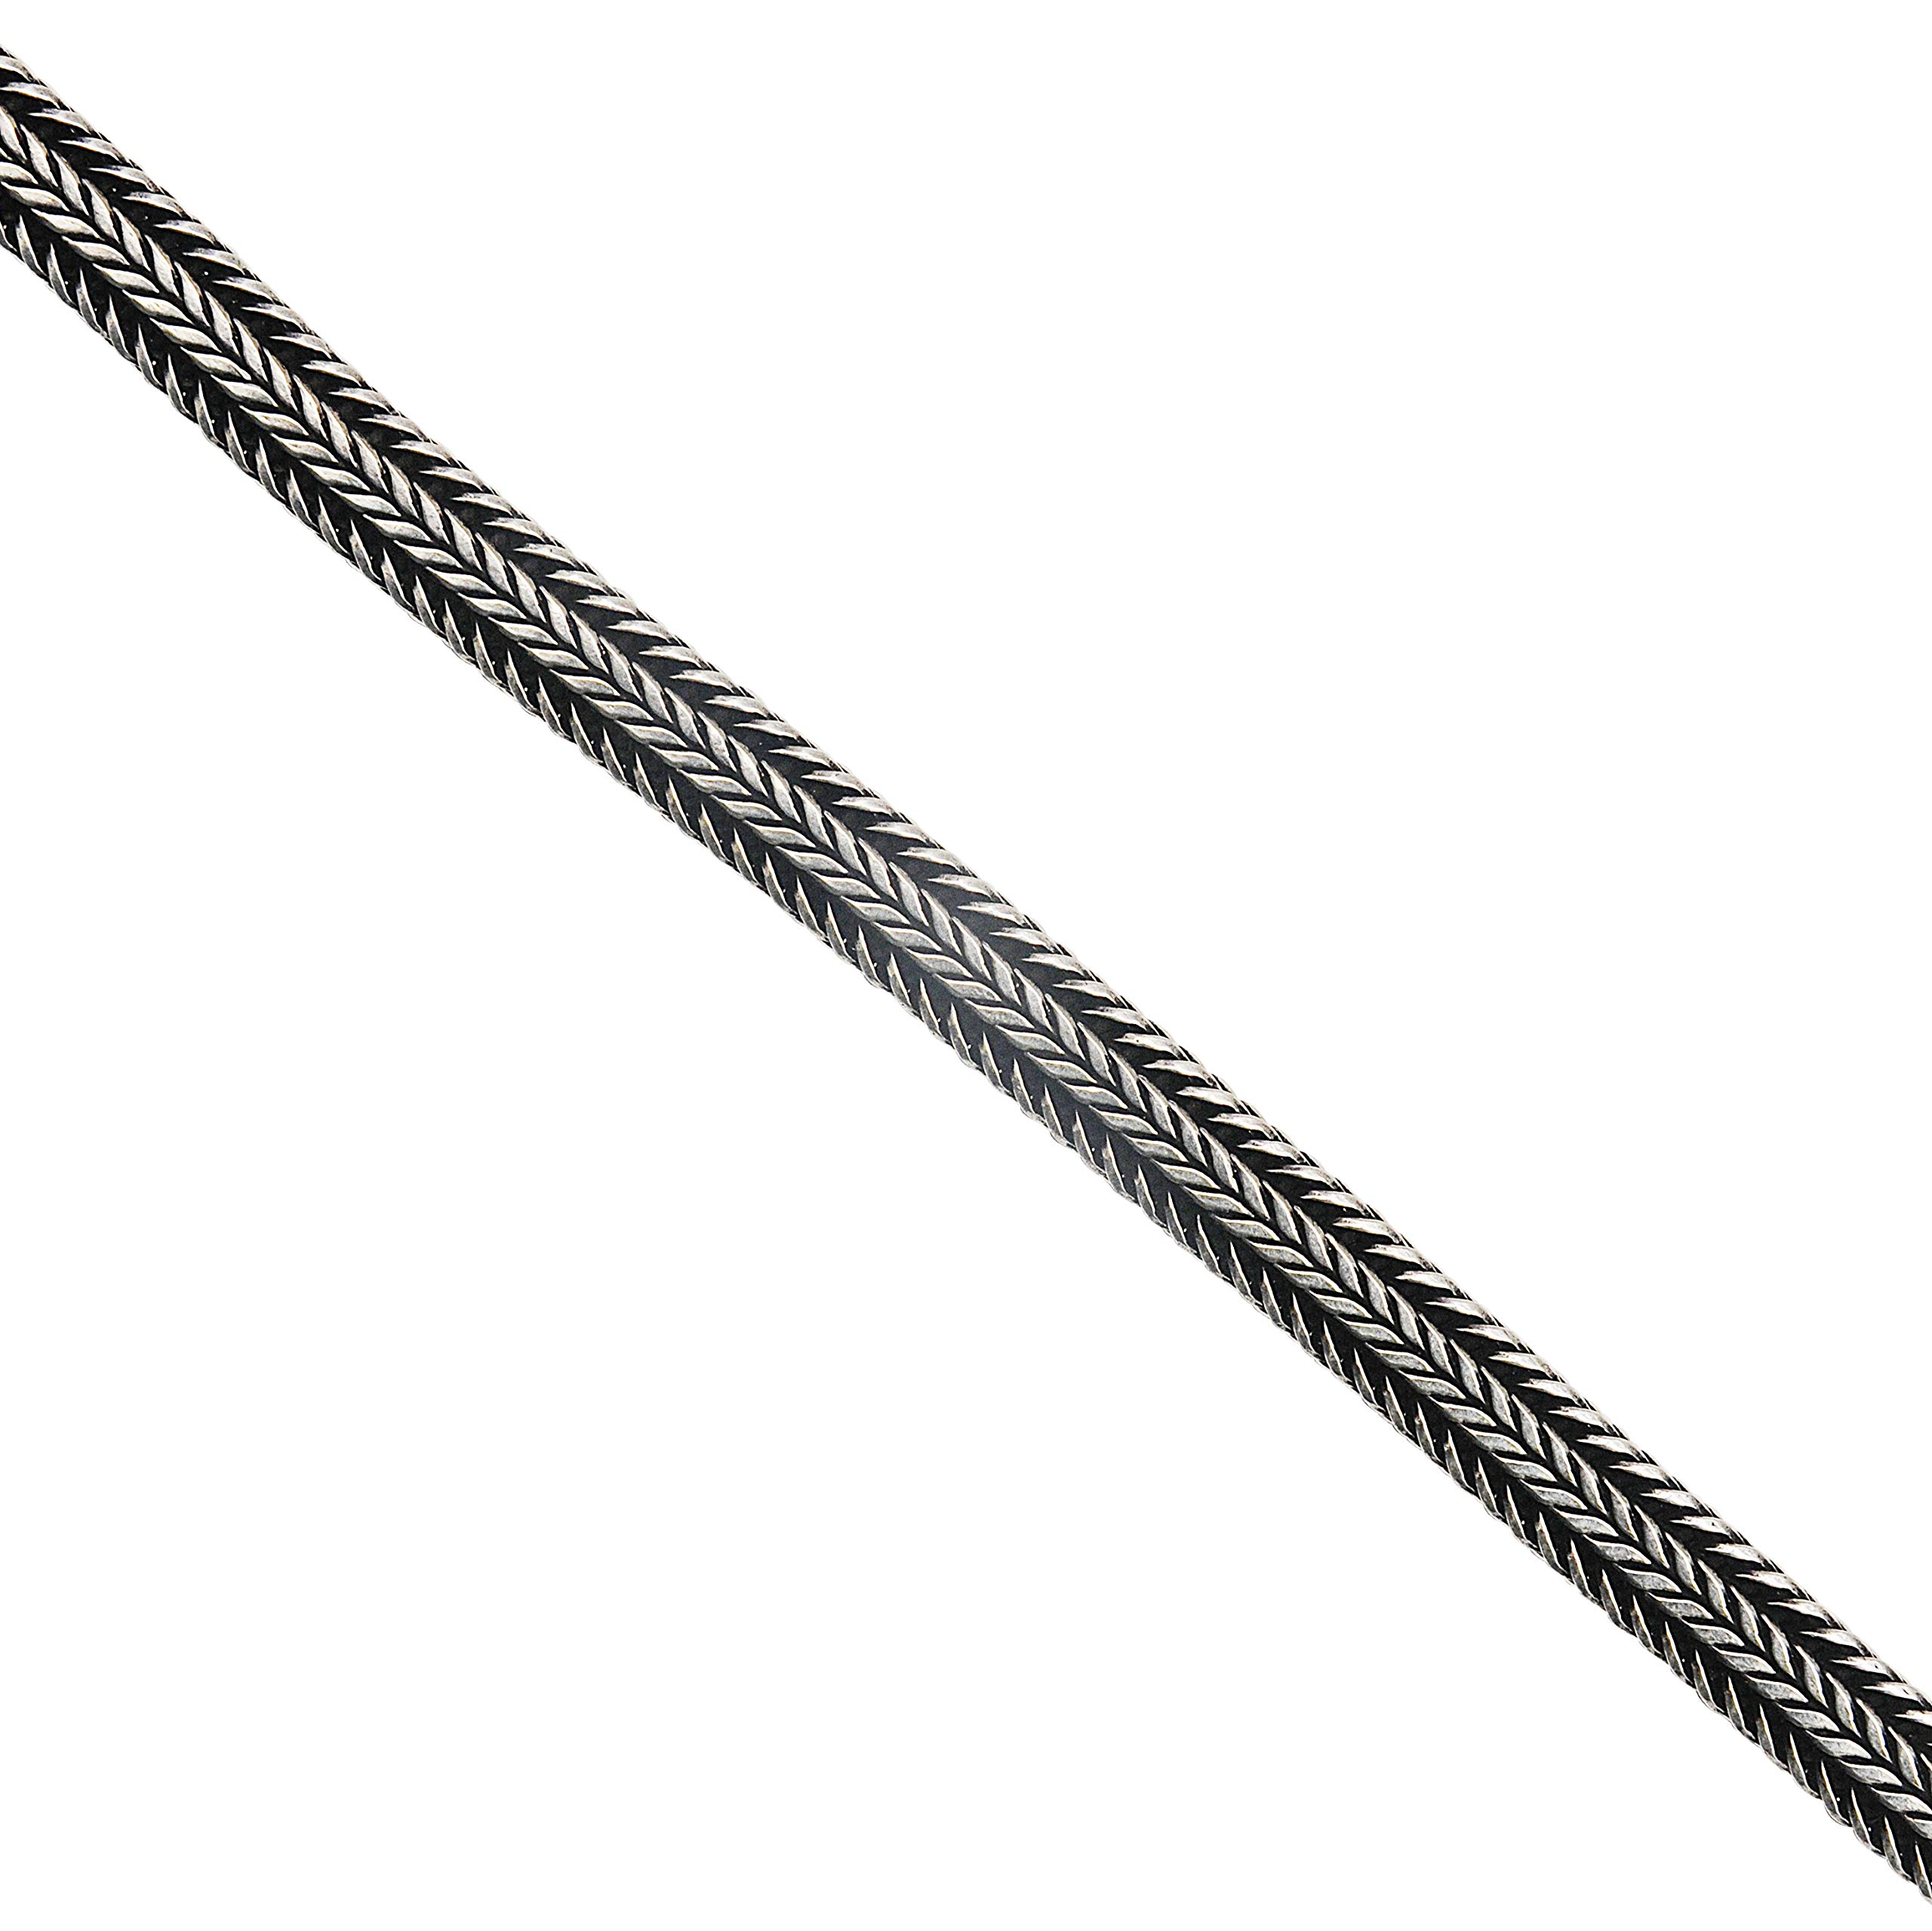 Adastra Jewelry Braided Chain 925 Sterling Silver Mens Wear Handmade Jewelry 1 to 36 Inches